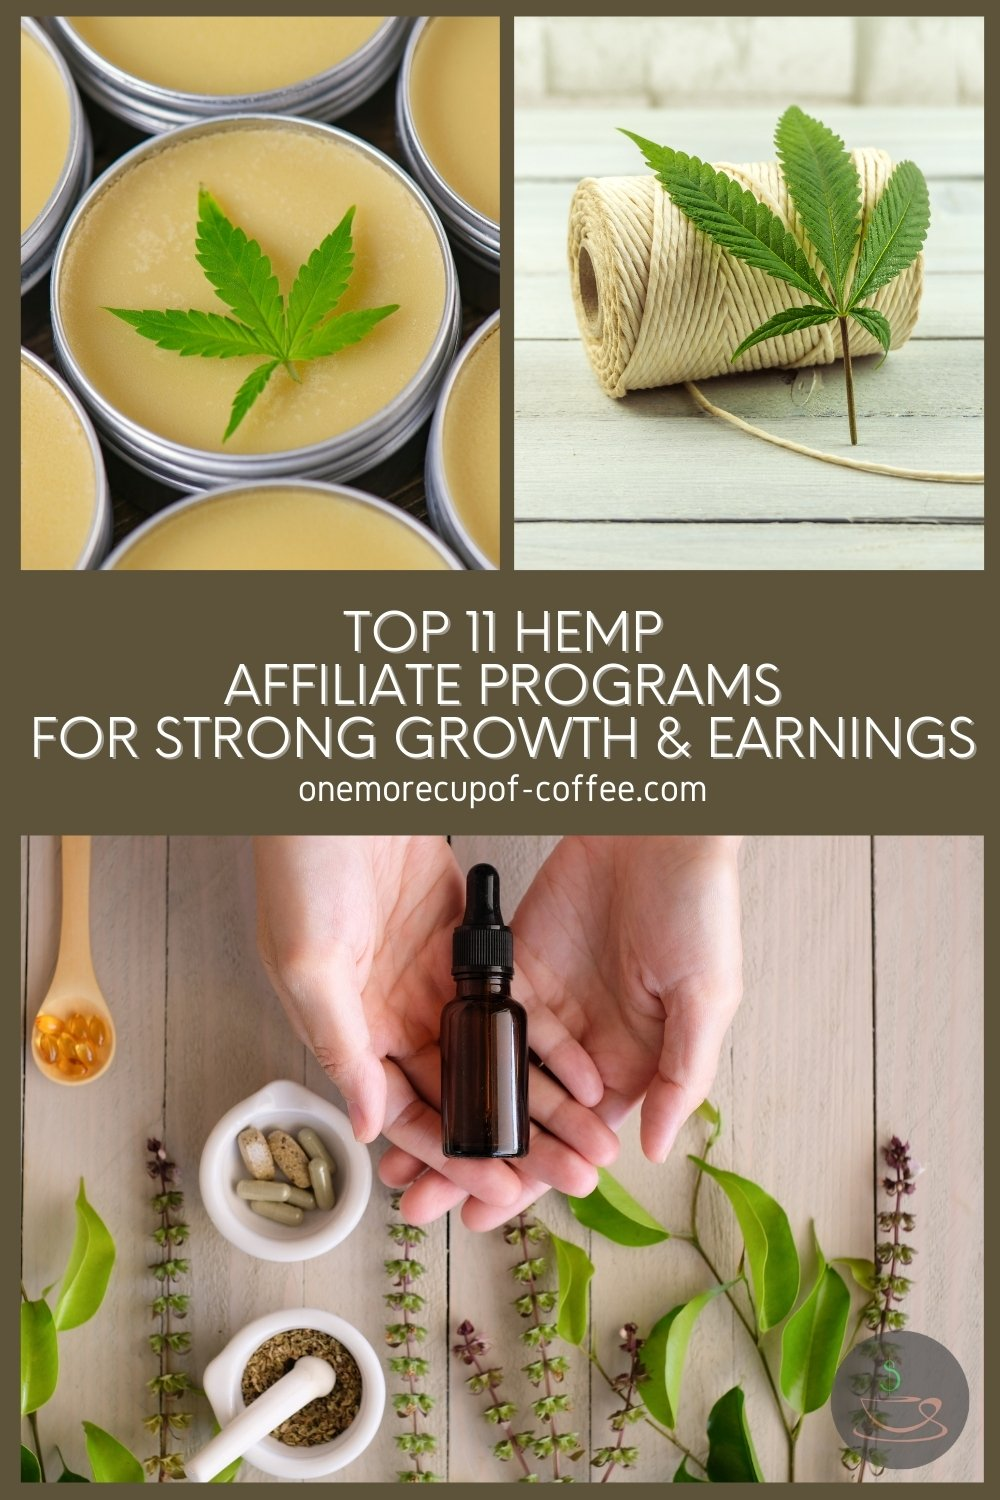 """photo collage of hemp and hemp products, with text overlay """"Top 11 Hemp Affiliate Programs For Strong Growth & Earnings"""""""